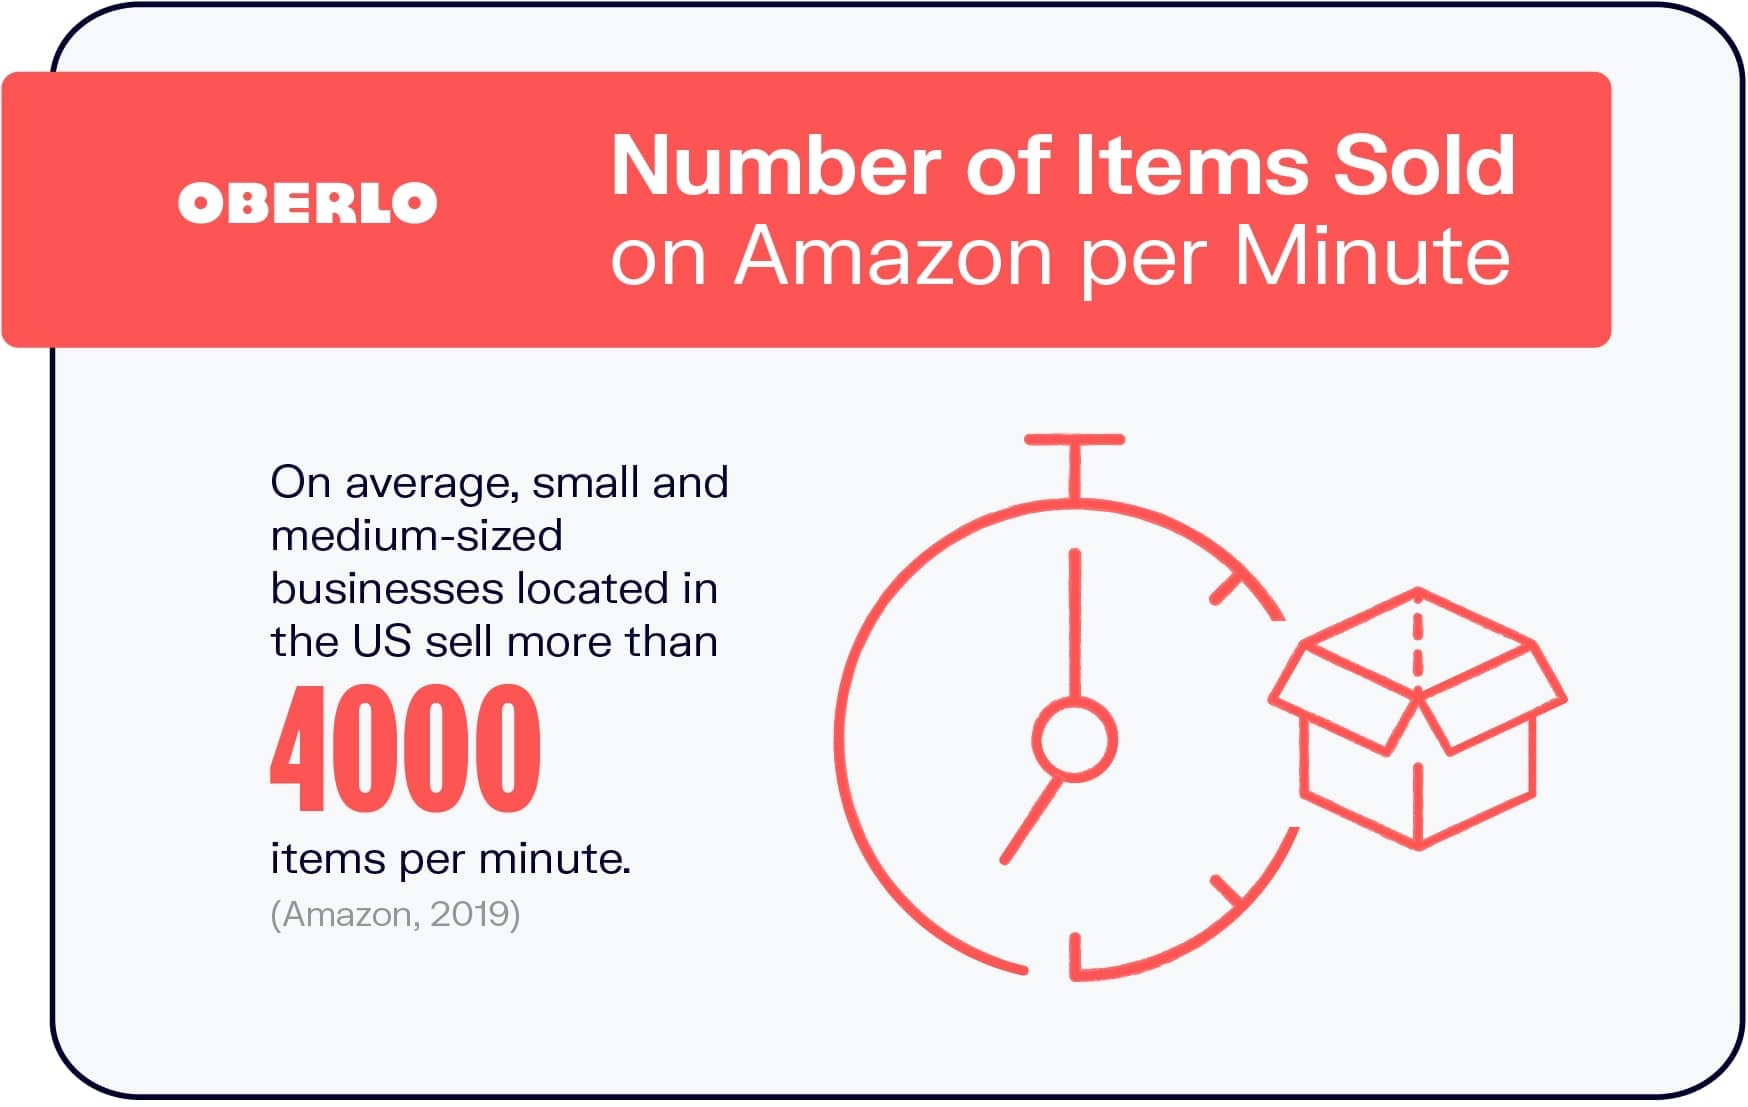 Number of Items Sold on Amazon per Minute